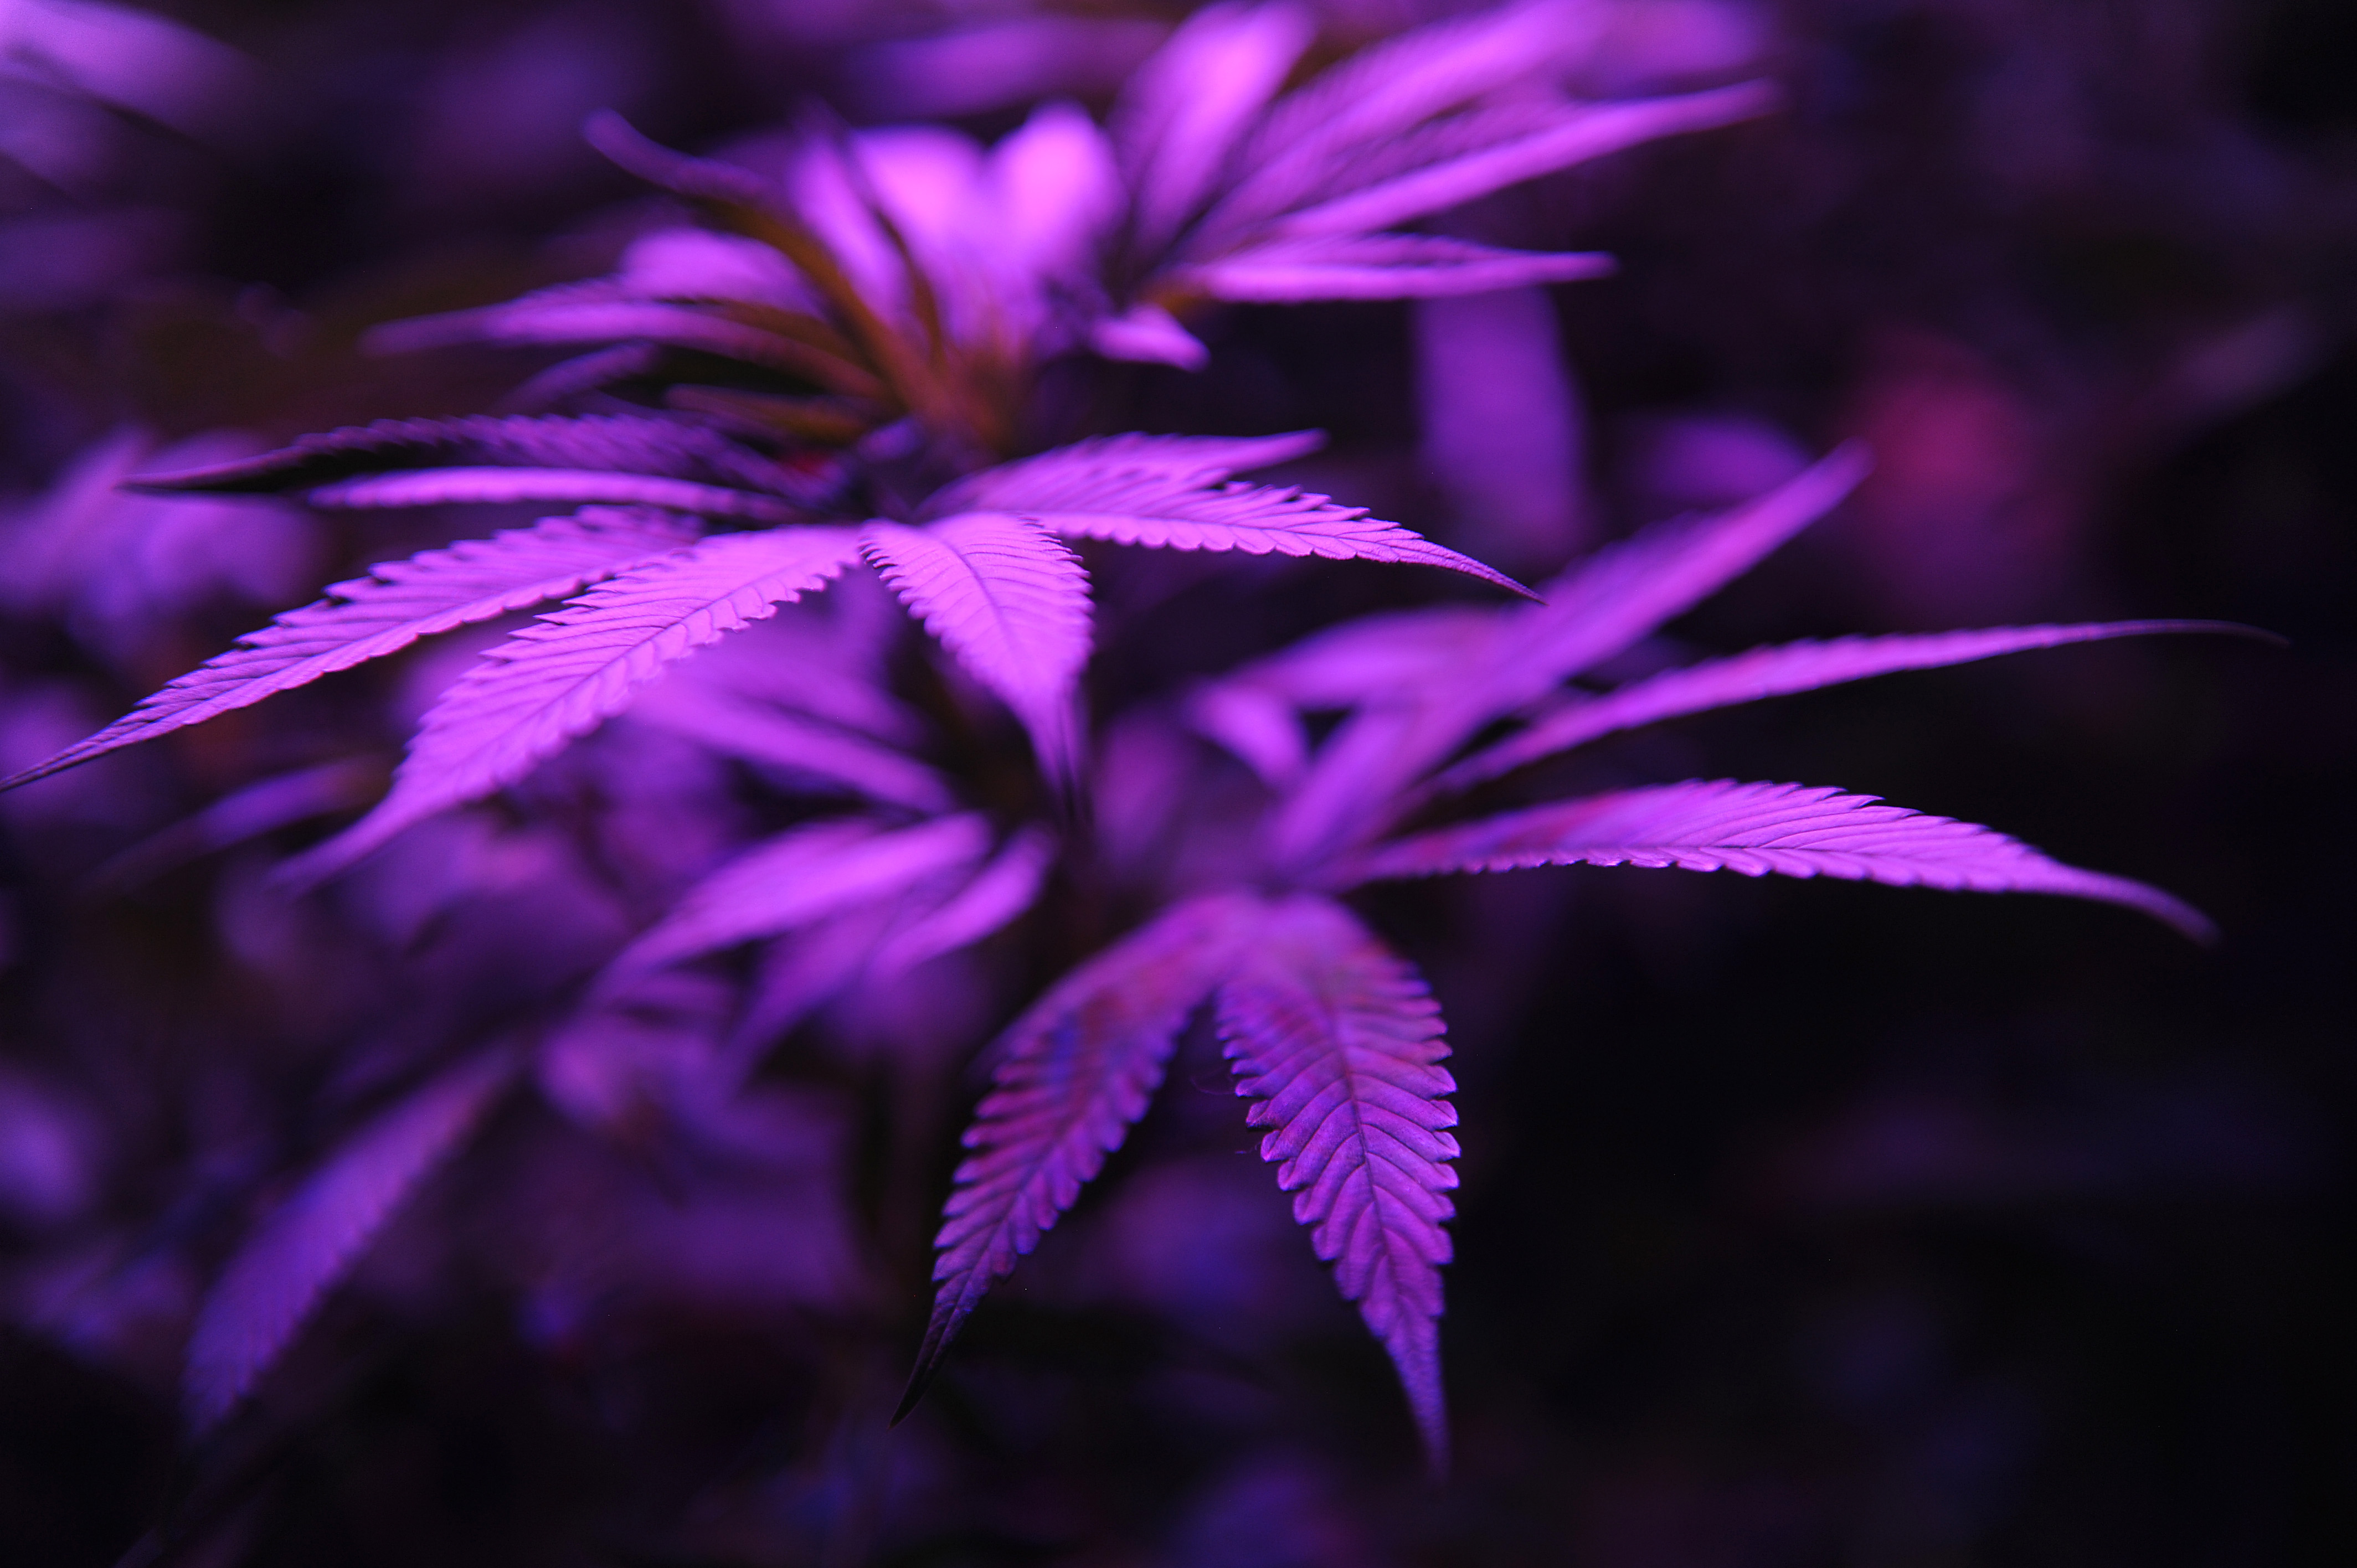 It sure looks like marijuana legalization will make your weed a lot cheaper